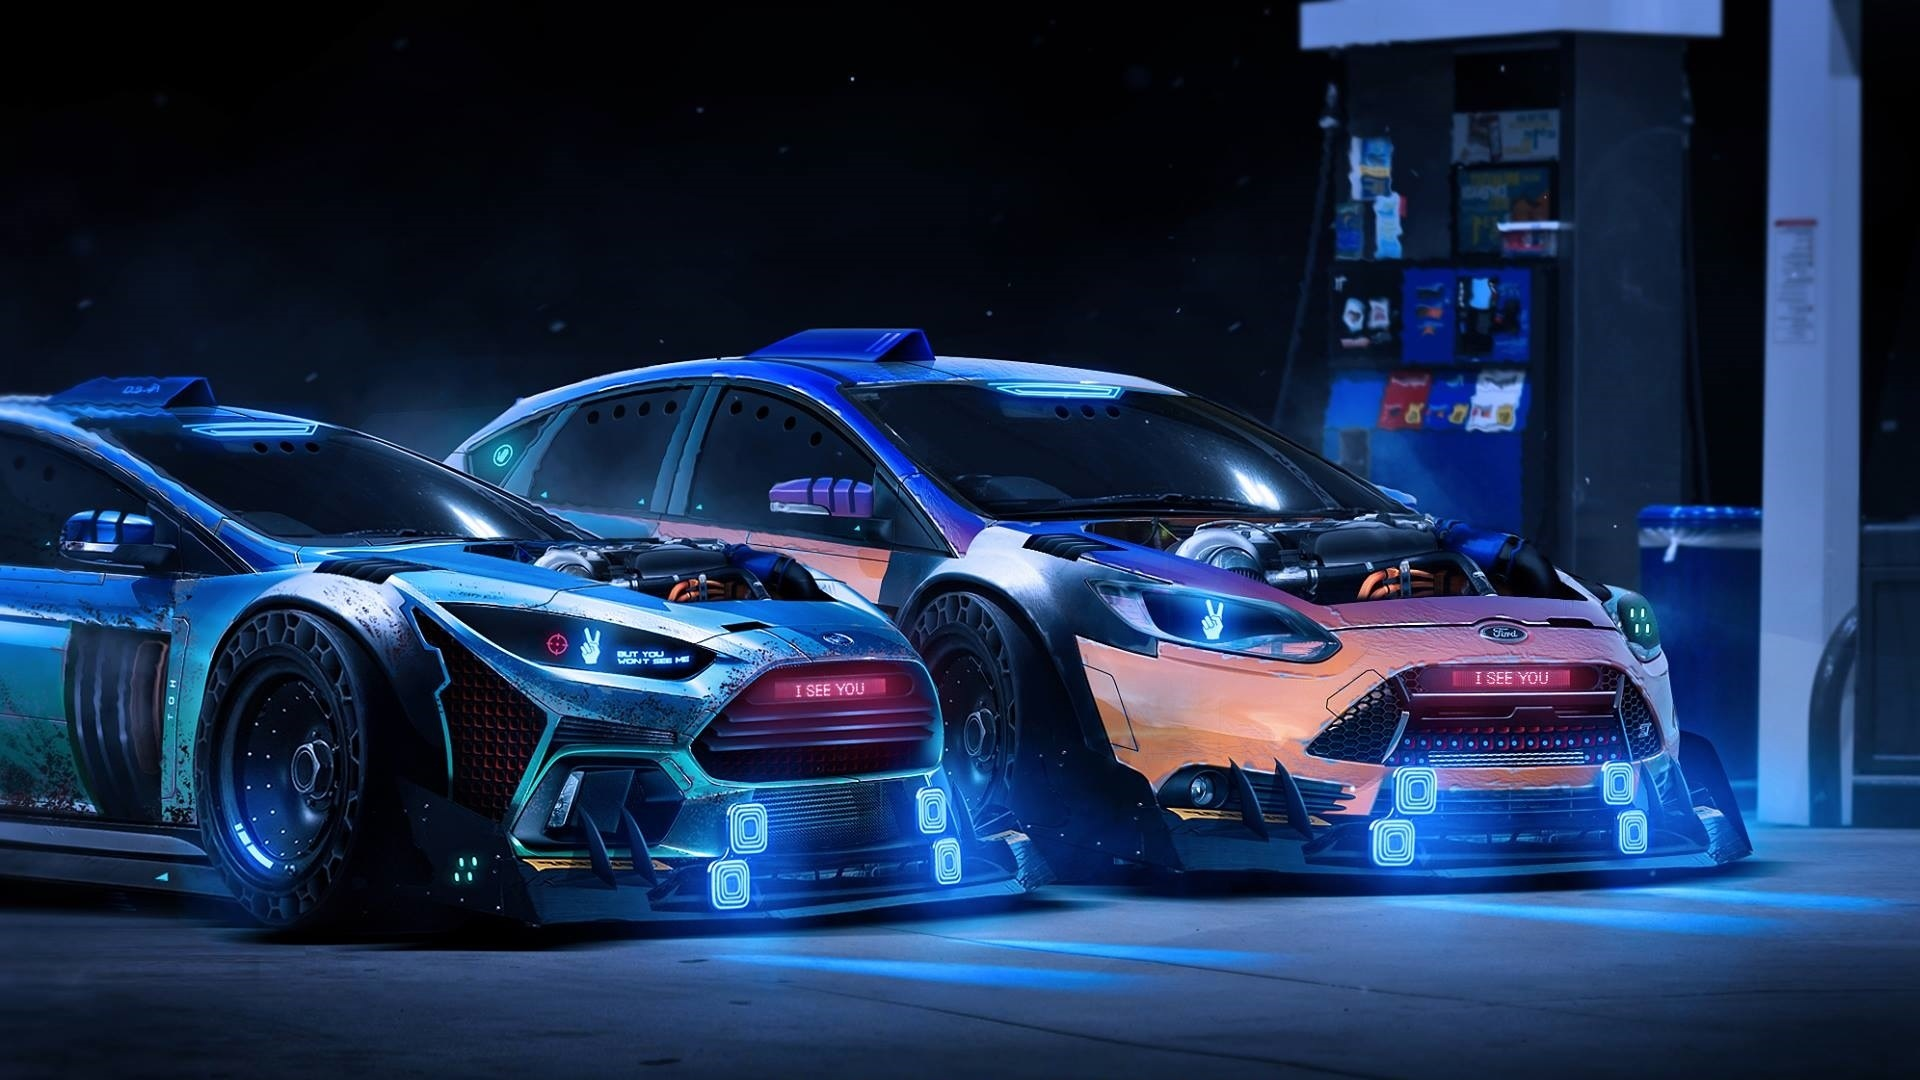 Wallpaper Ford Focus Rs 2015 Neon Supercars 1920x1080 Full